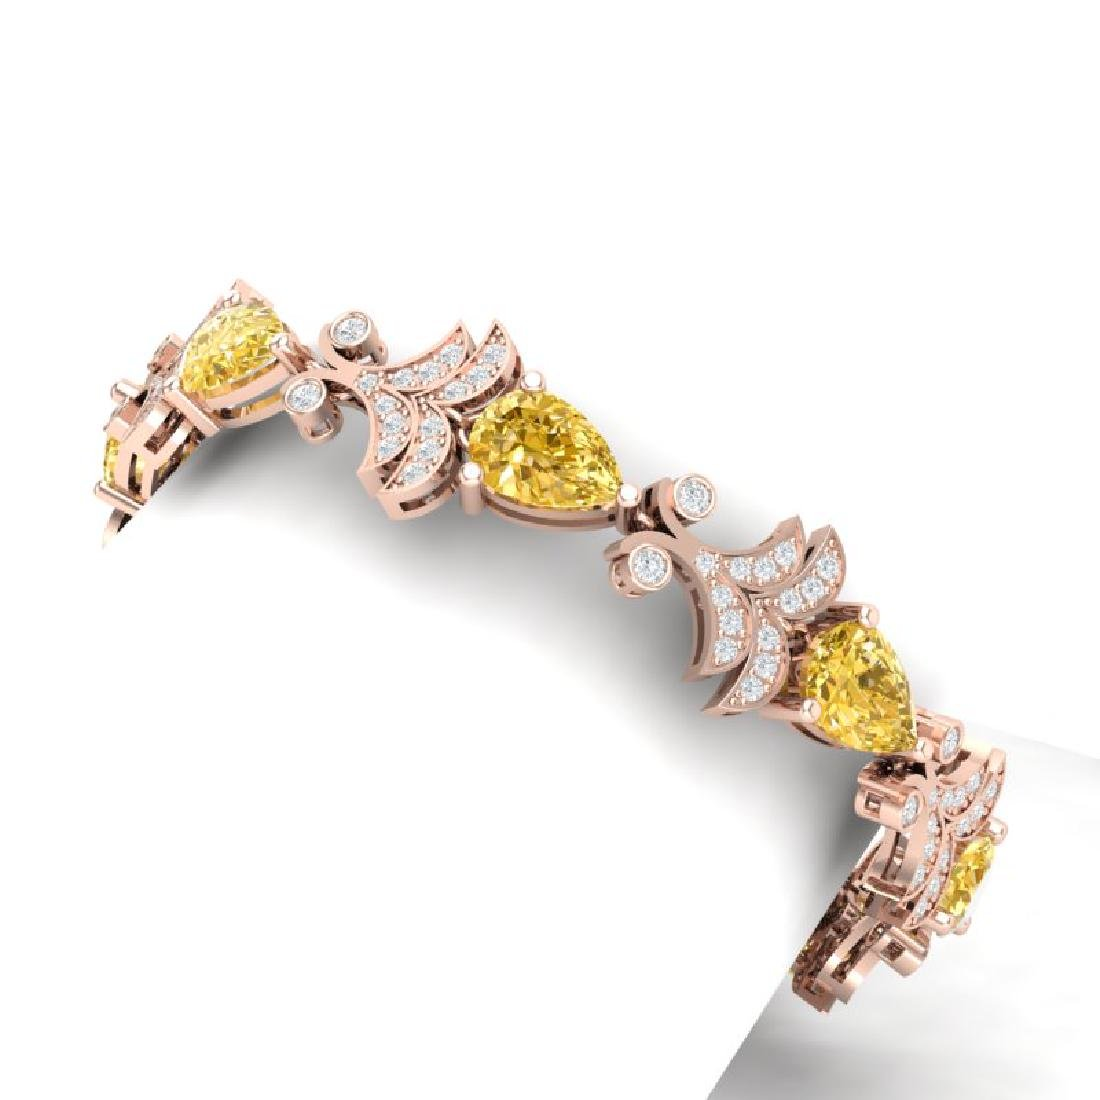 23.66 CTW Royalty Canary Citrine & VS Diamond Bracelet